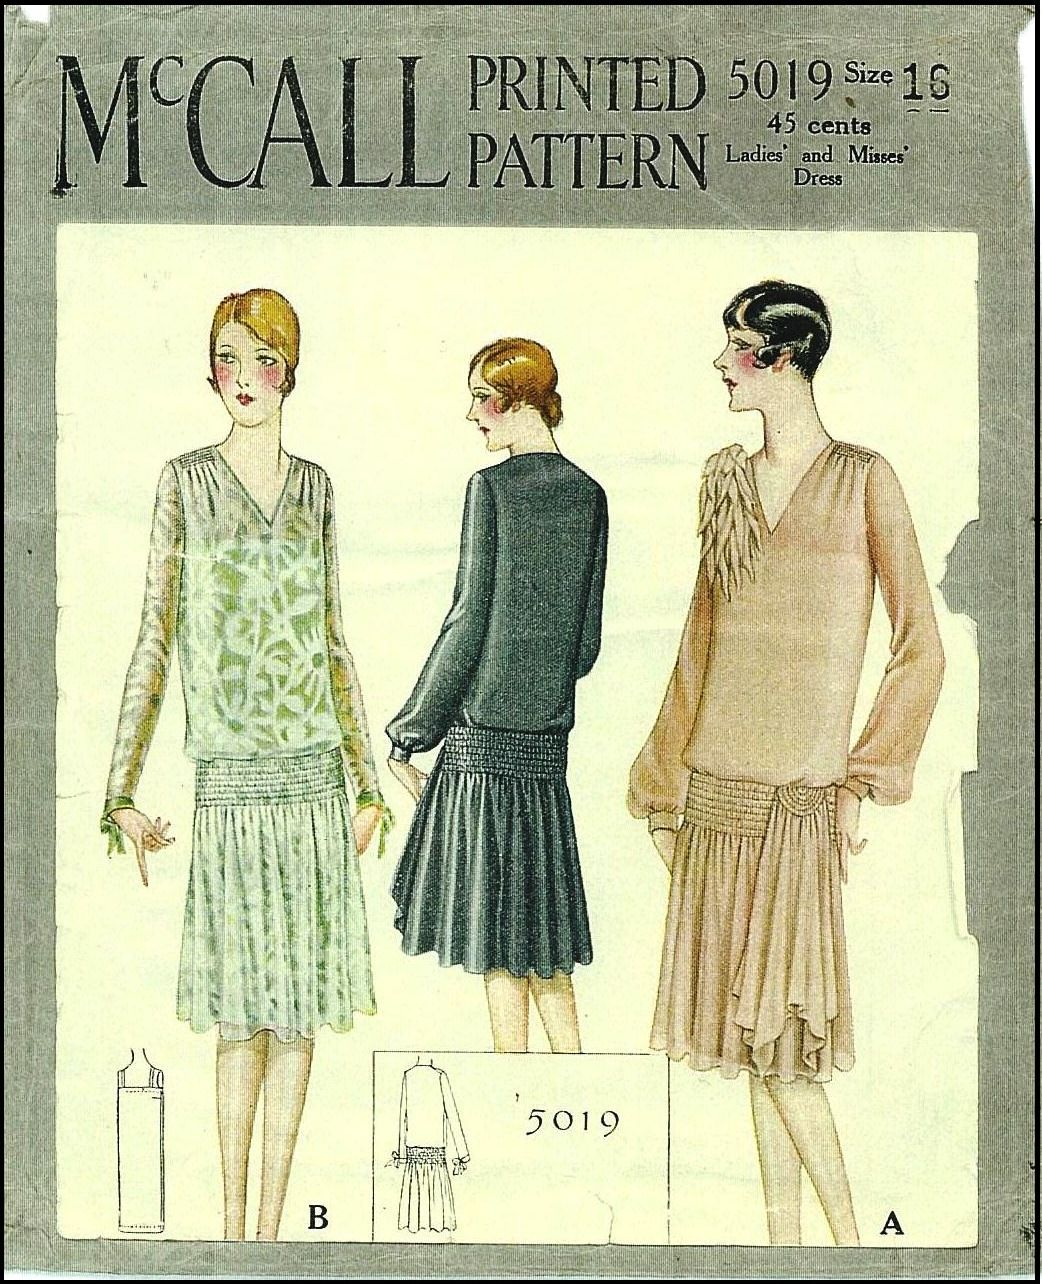 from Riaan dating mccall patterns